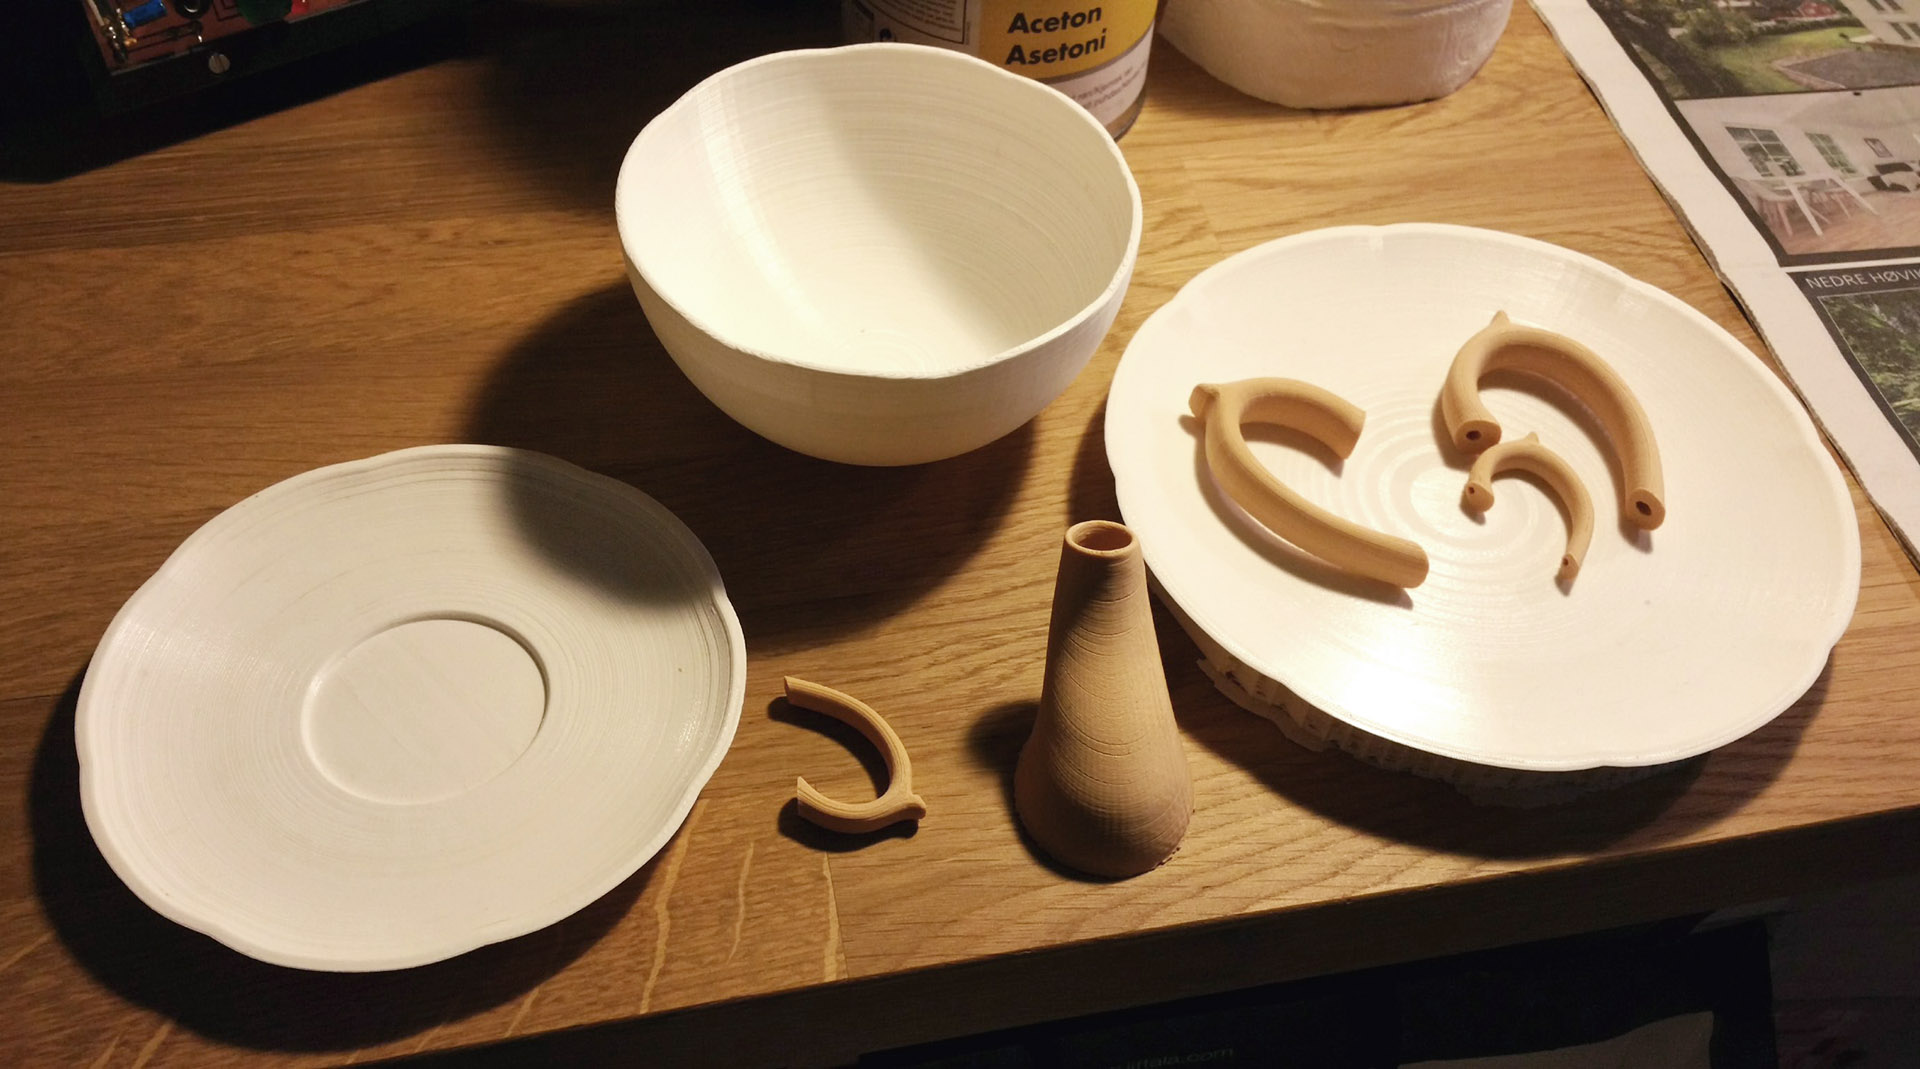 Spout and Dishes 2